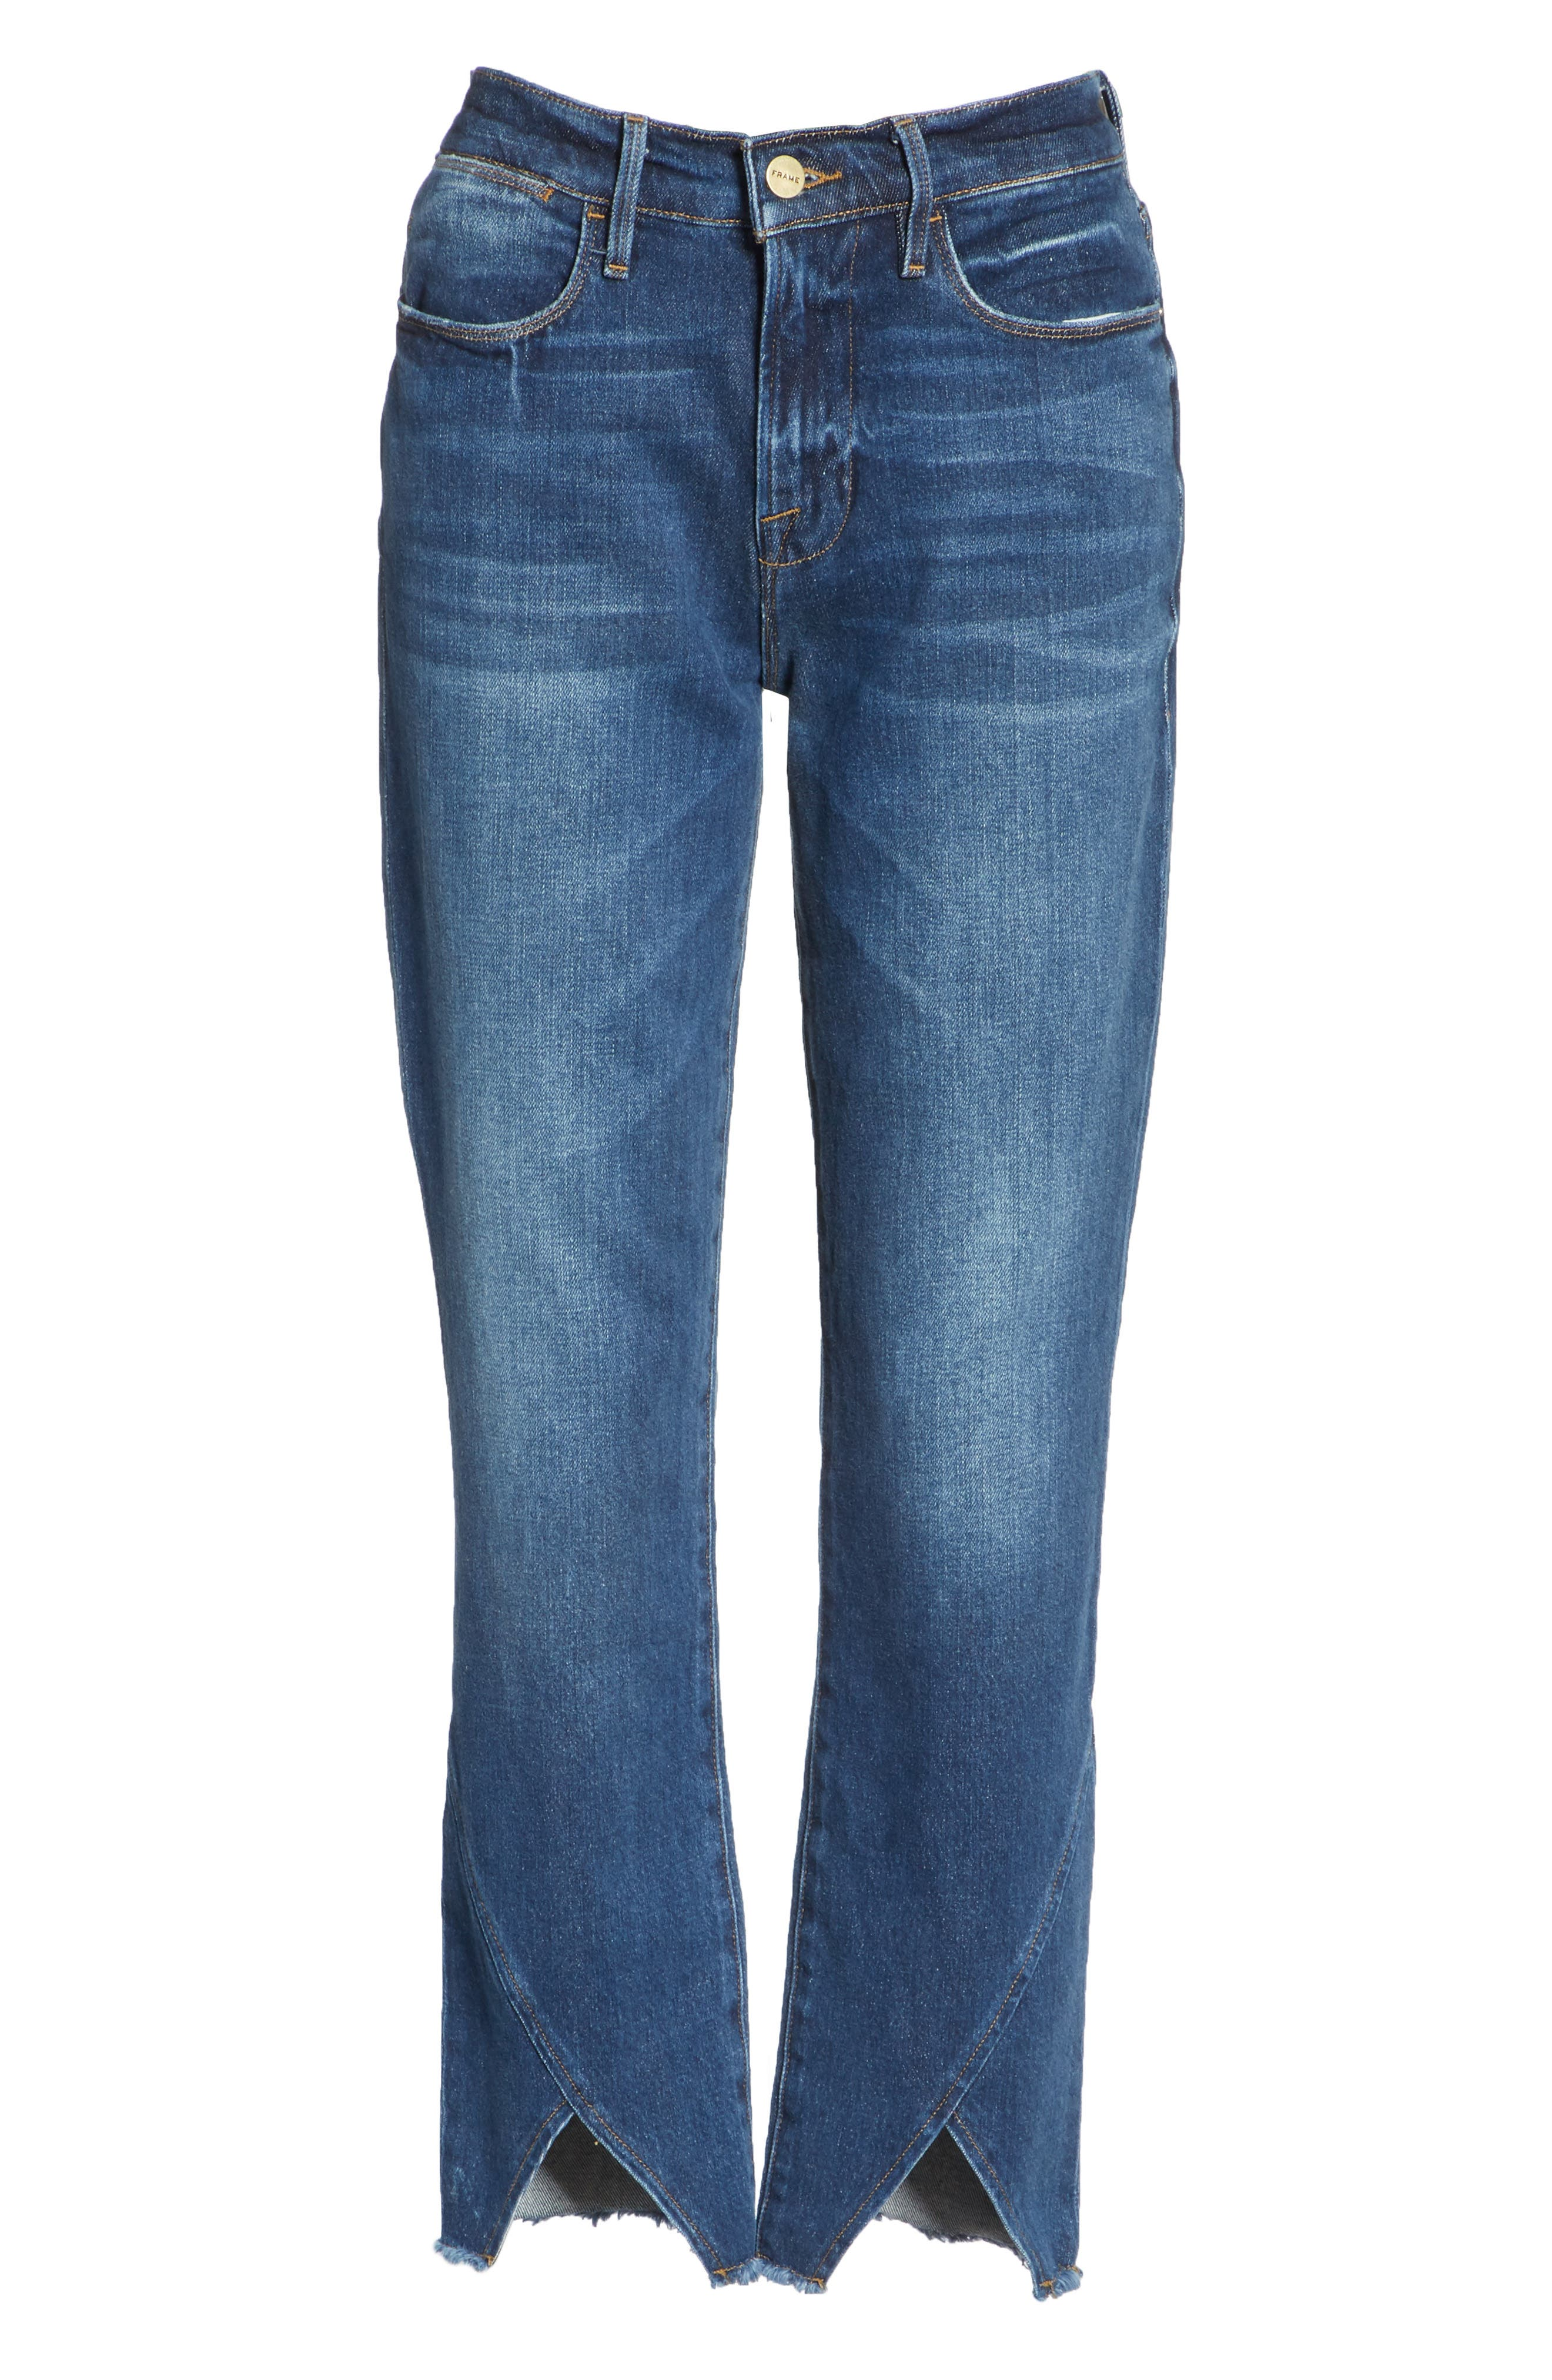 Le High Straight Asymmetrical Hem Jeans,                             Alternate thumbnail 7, color,                             401